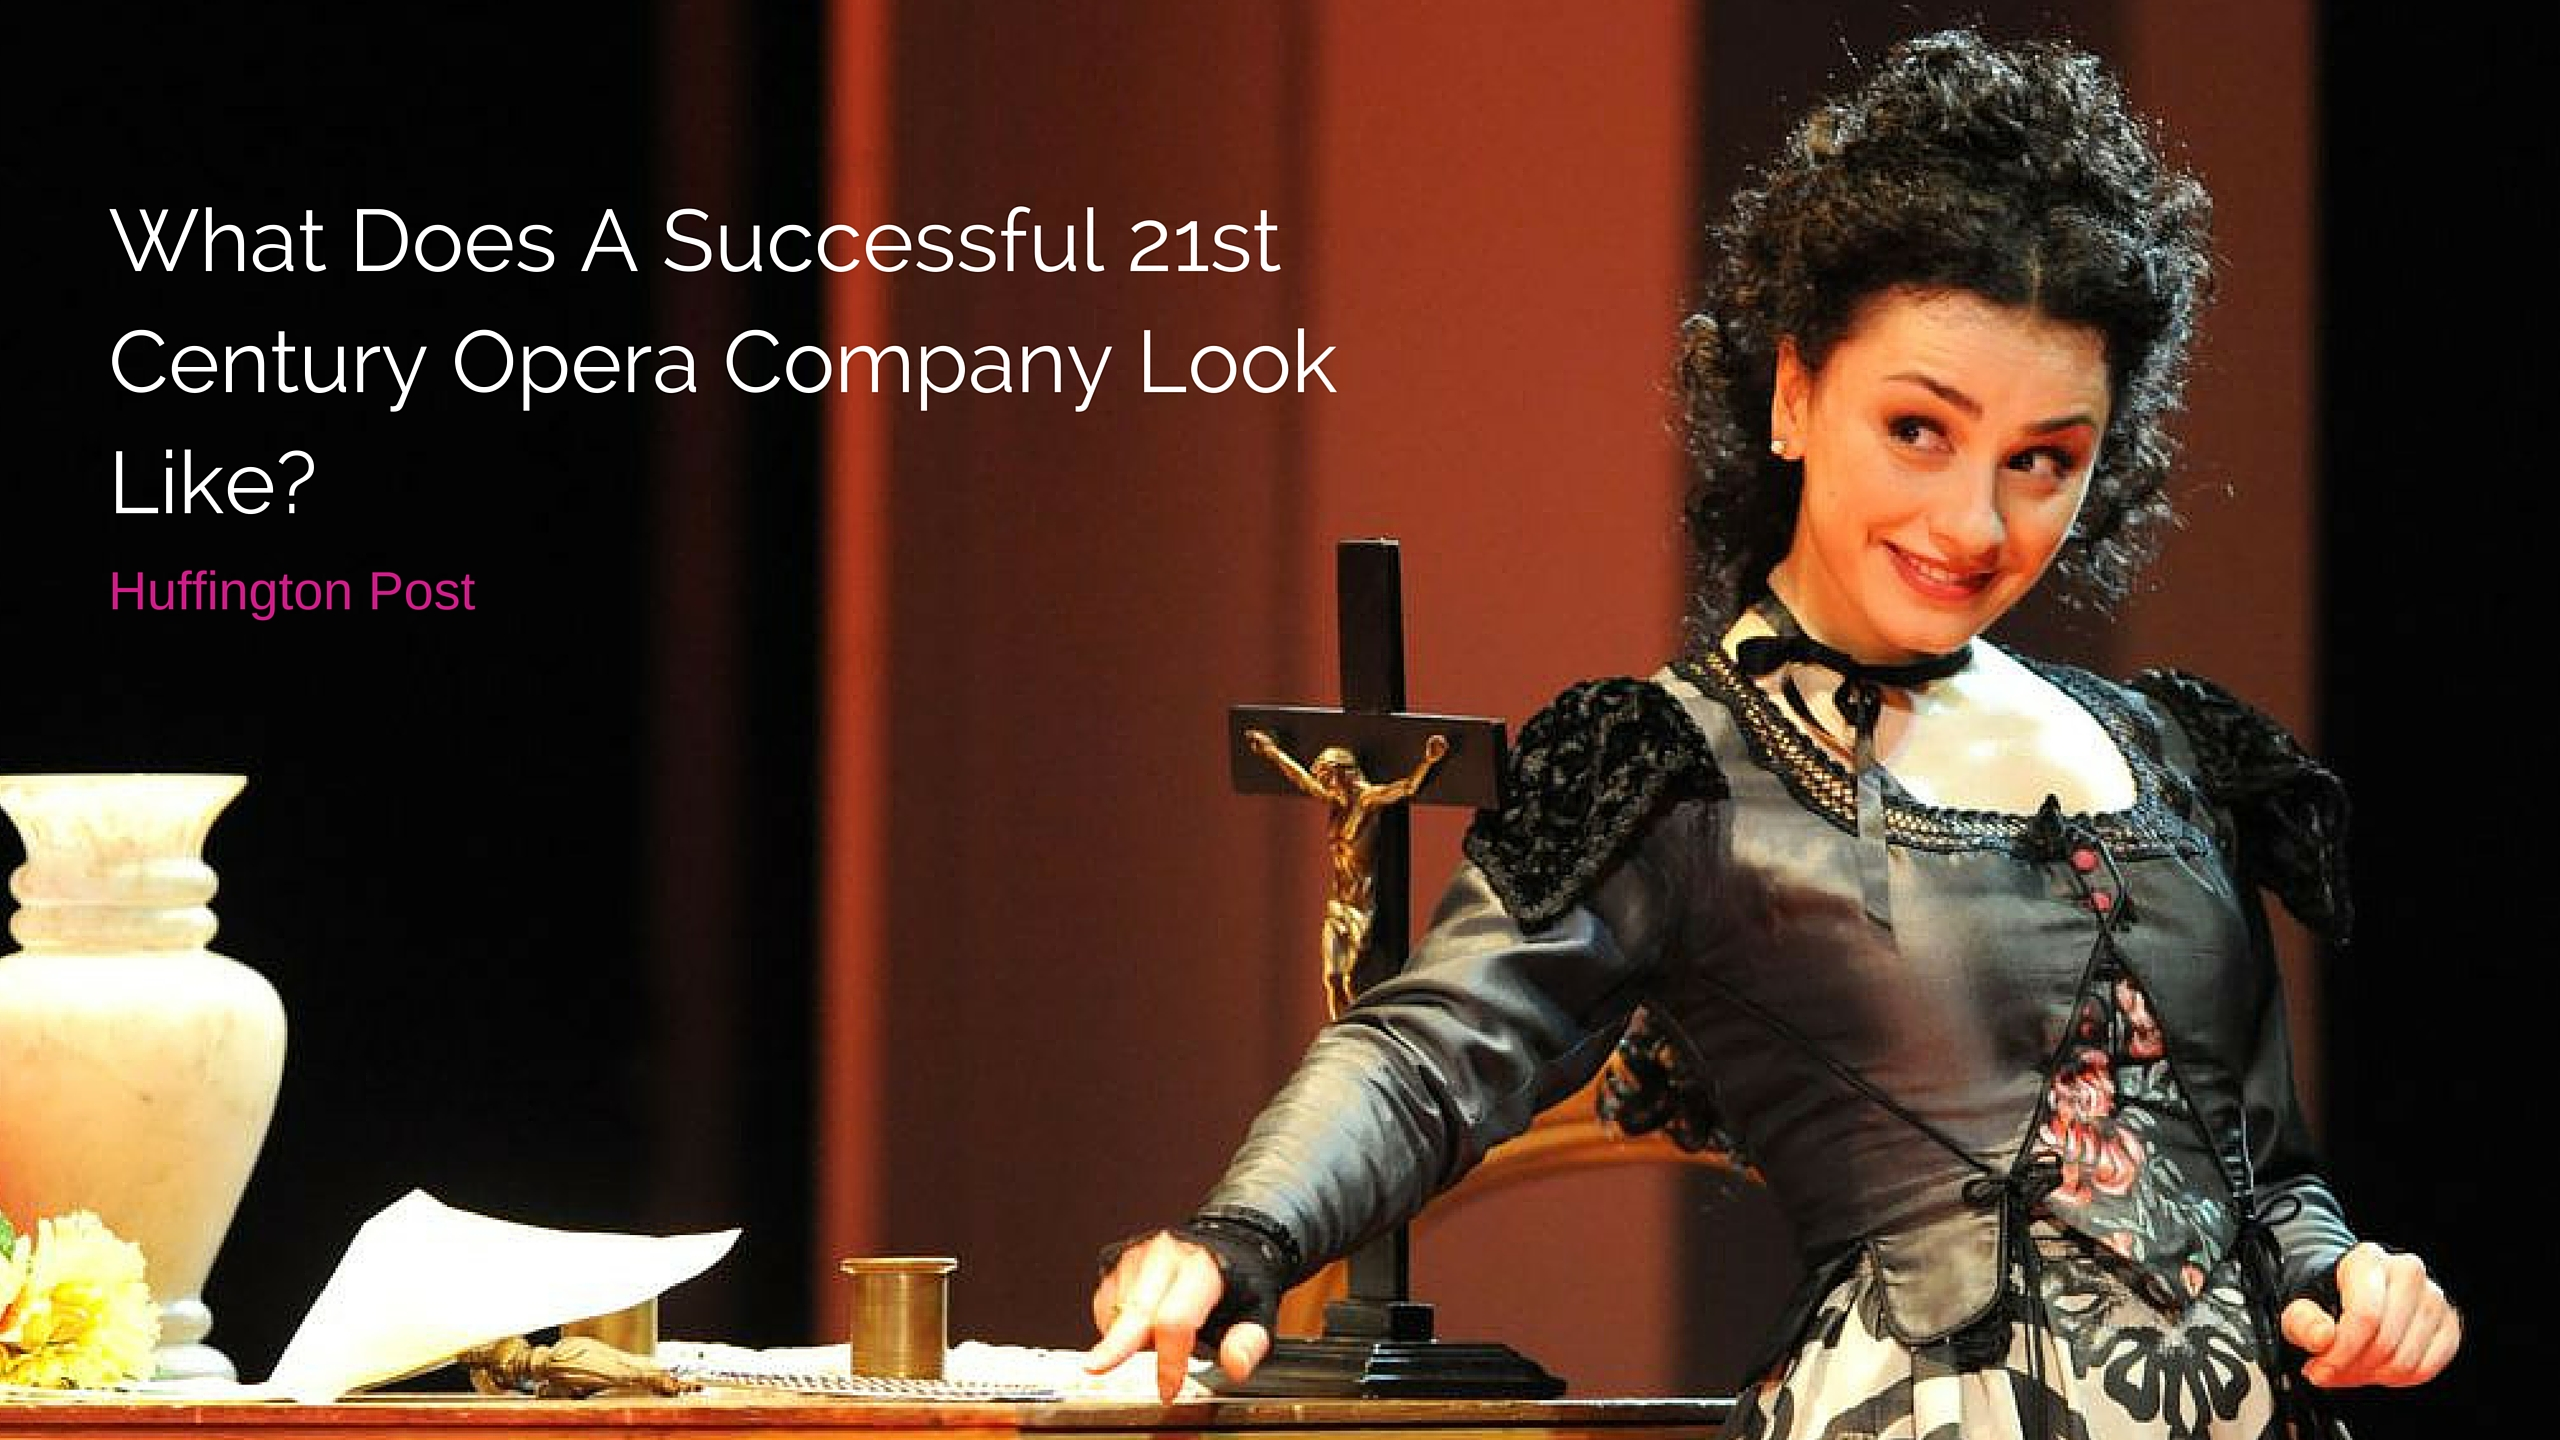 What Does A Successful 21st Century Opera Company Look Like?